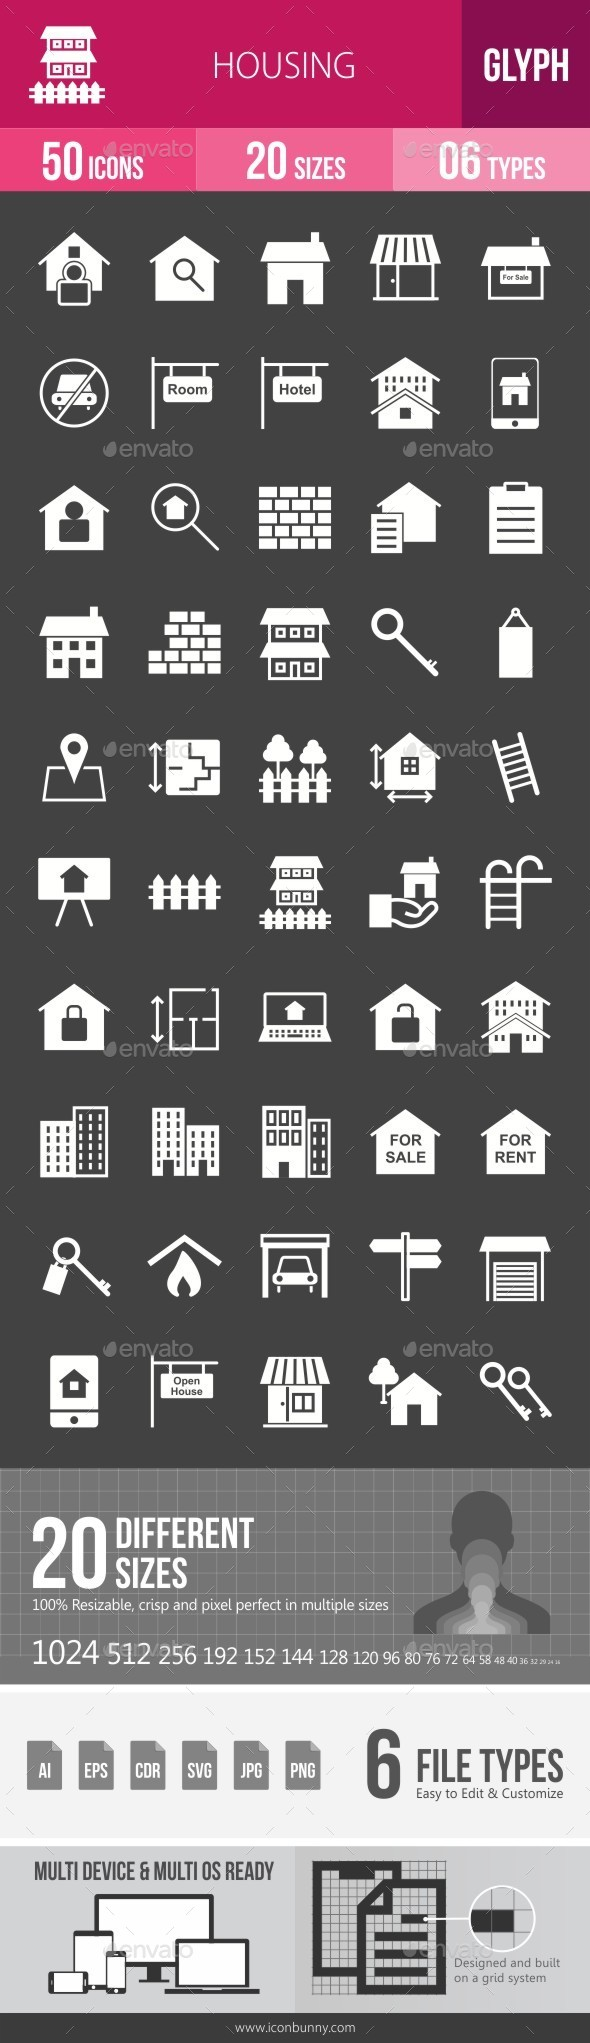 Housing Glyph Inverted Icons - Icons